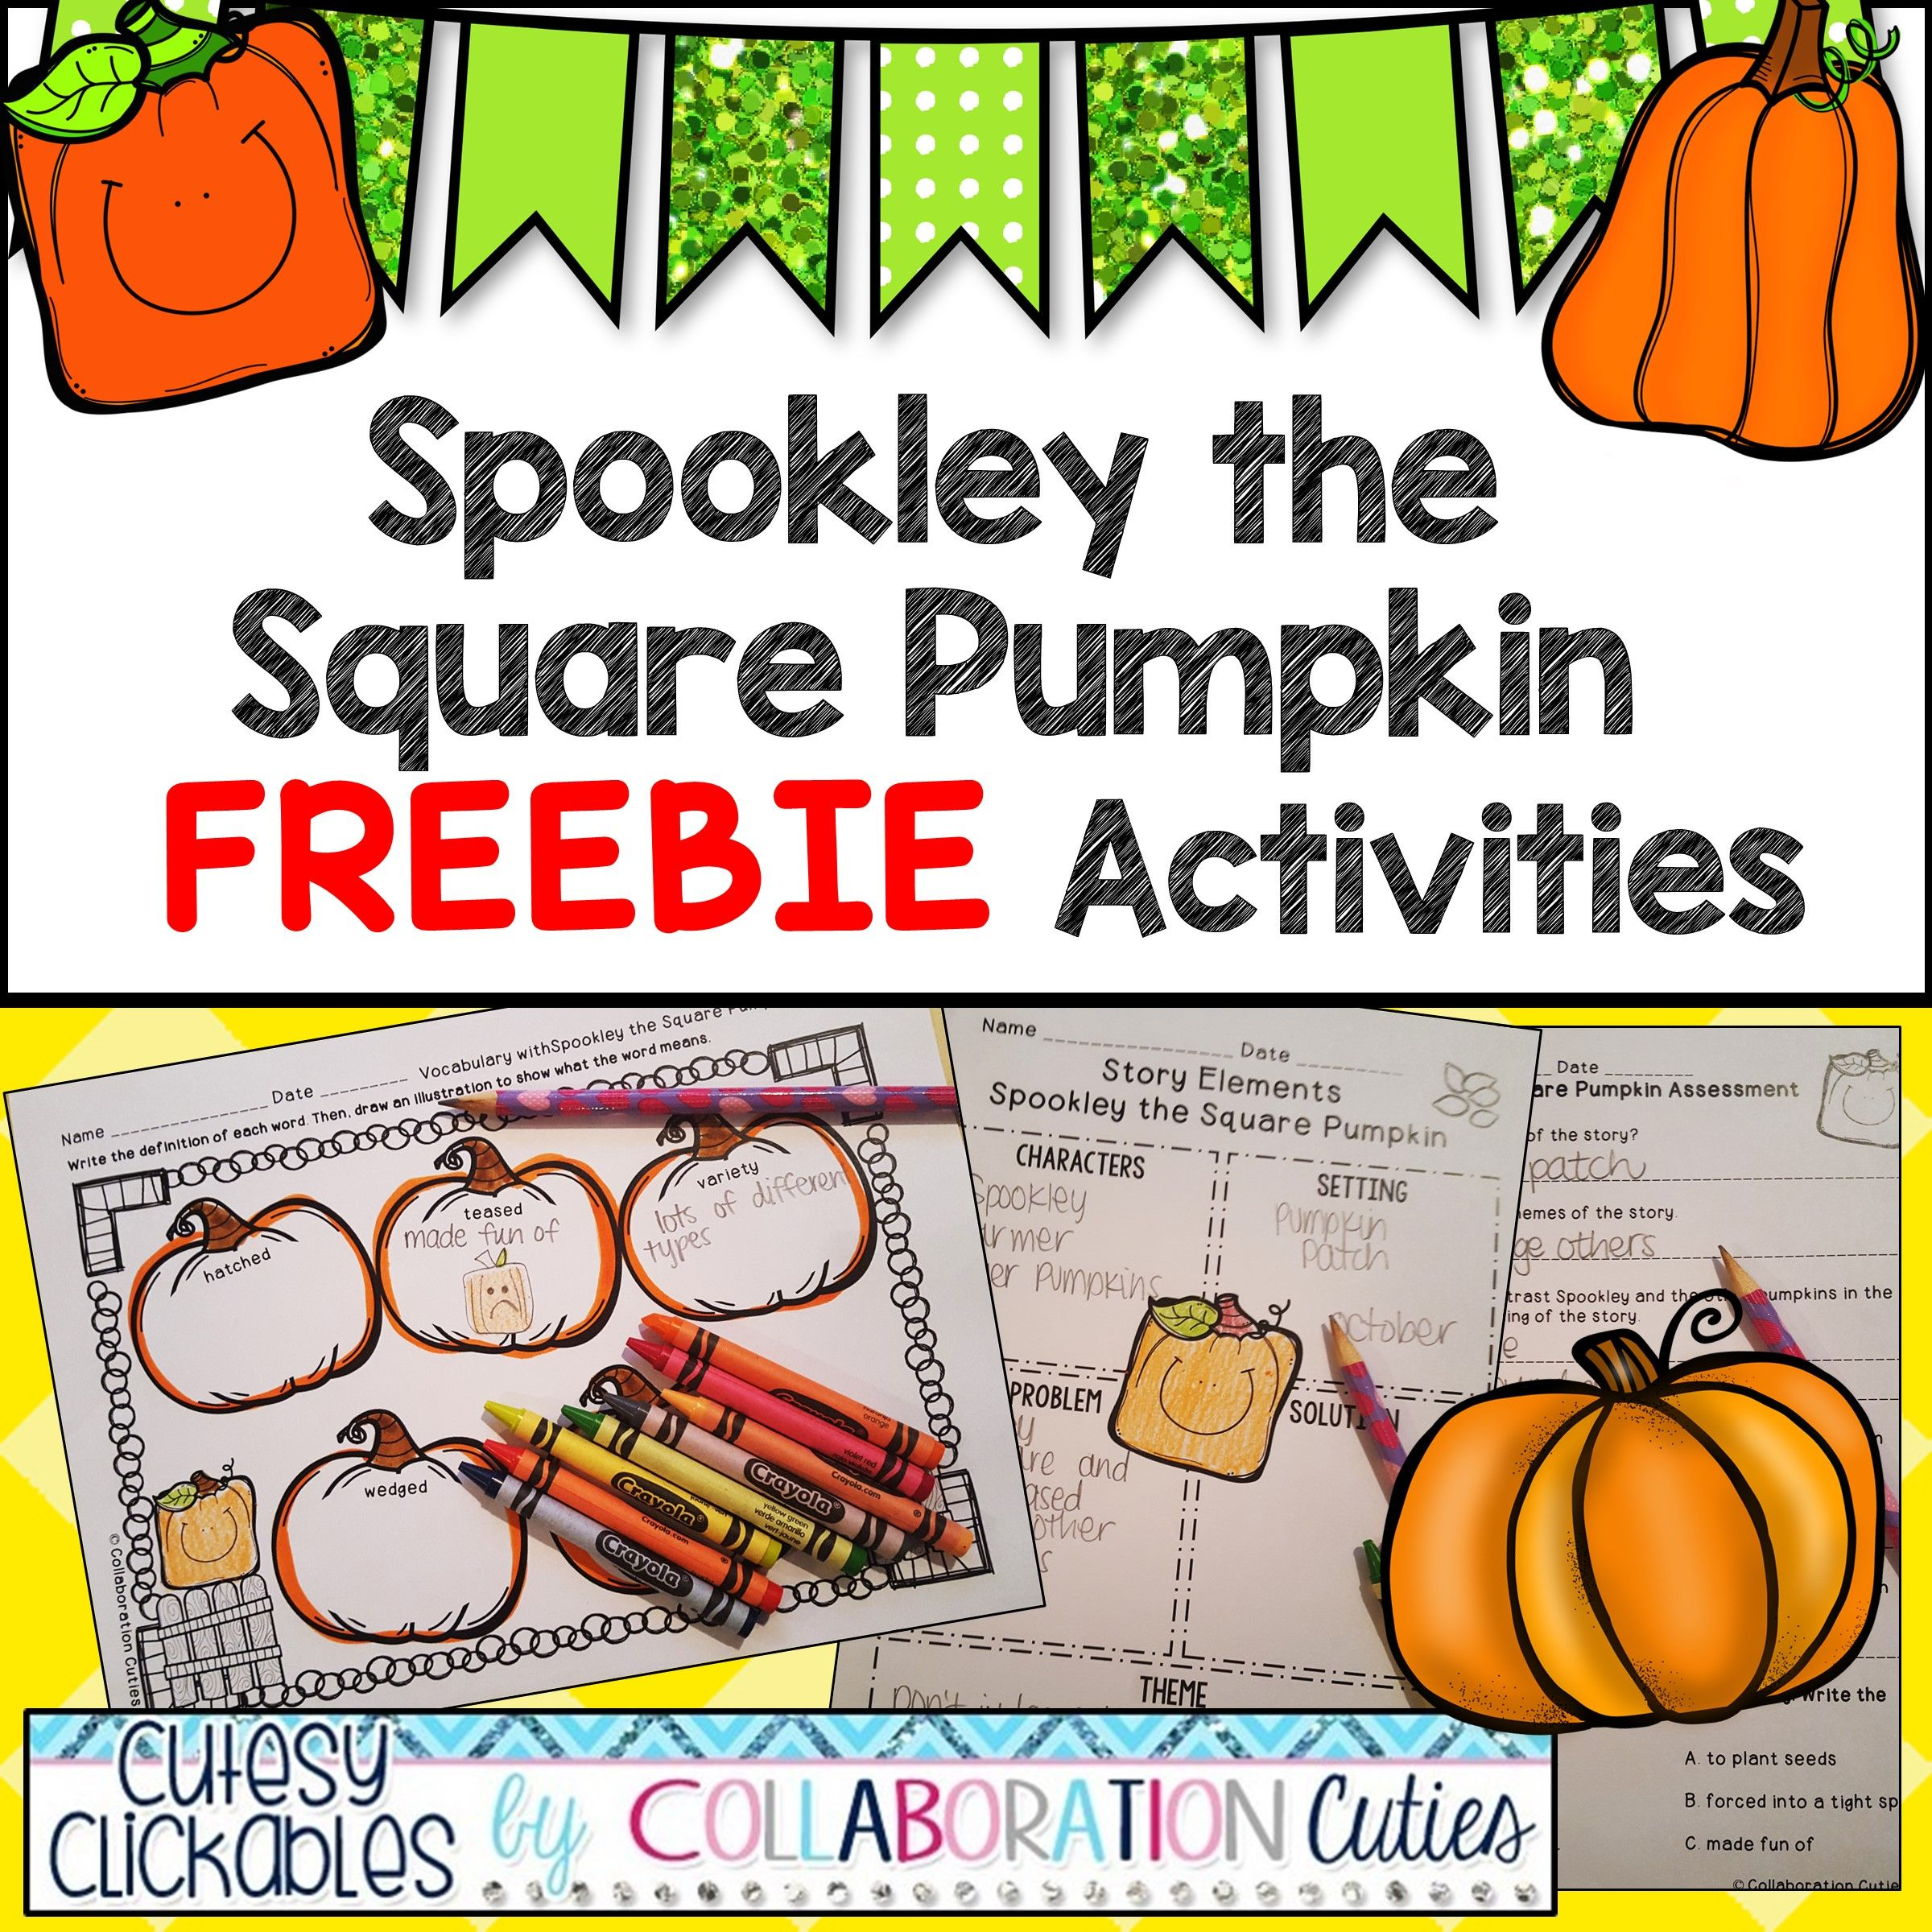 Spookley The Square Pumpkin Freebie Activities Assessment